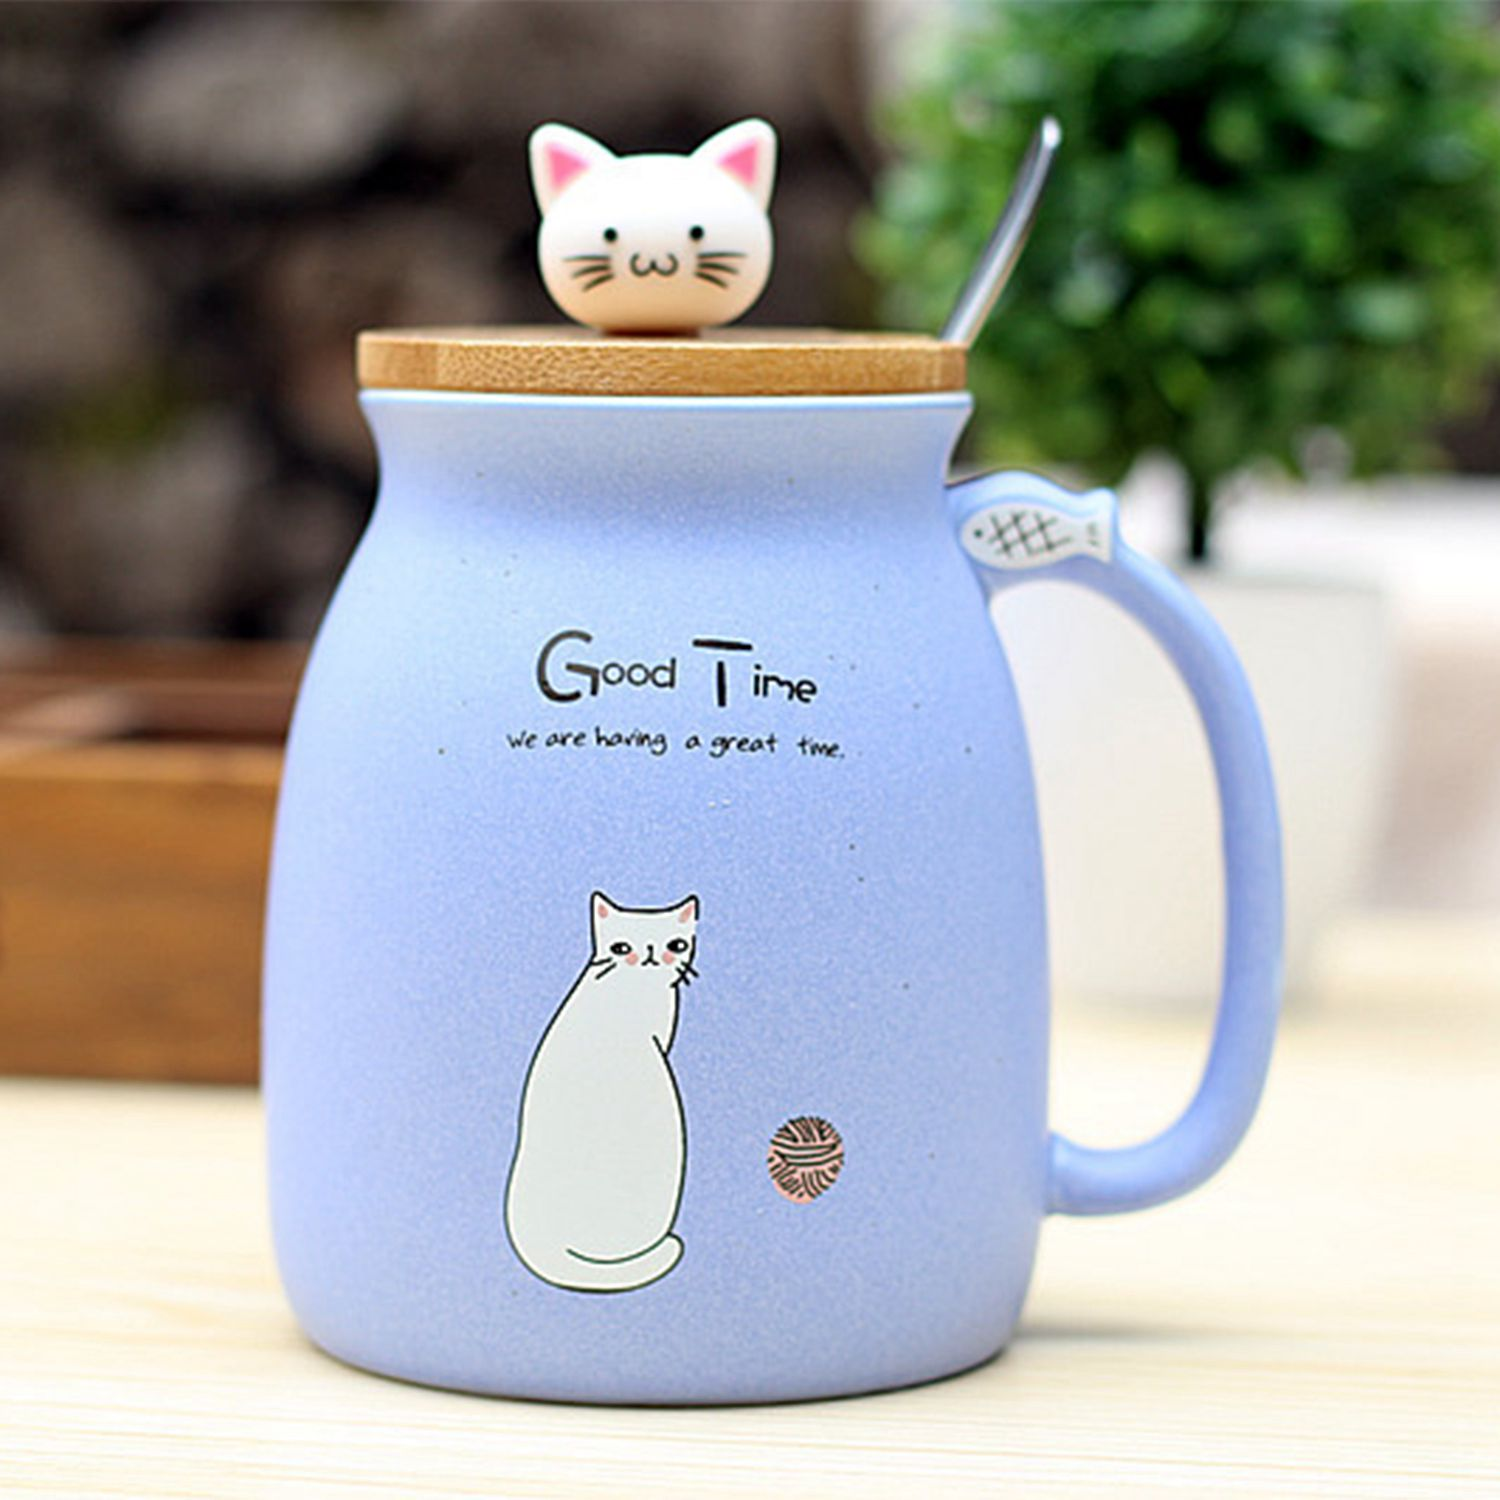 New sesame <font><b>cat</b></font> heat-resistant <font><b>cup</b></font> color cartoon with lid <font><b>cup</b></font> kitten milk coffee ceramic mug children <font><b>cup</b></font> office gifts image